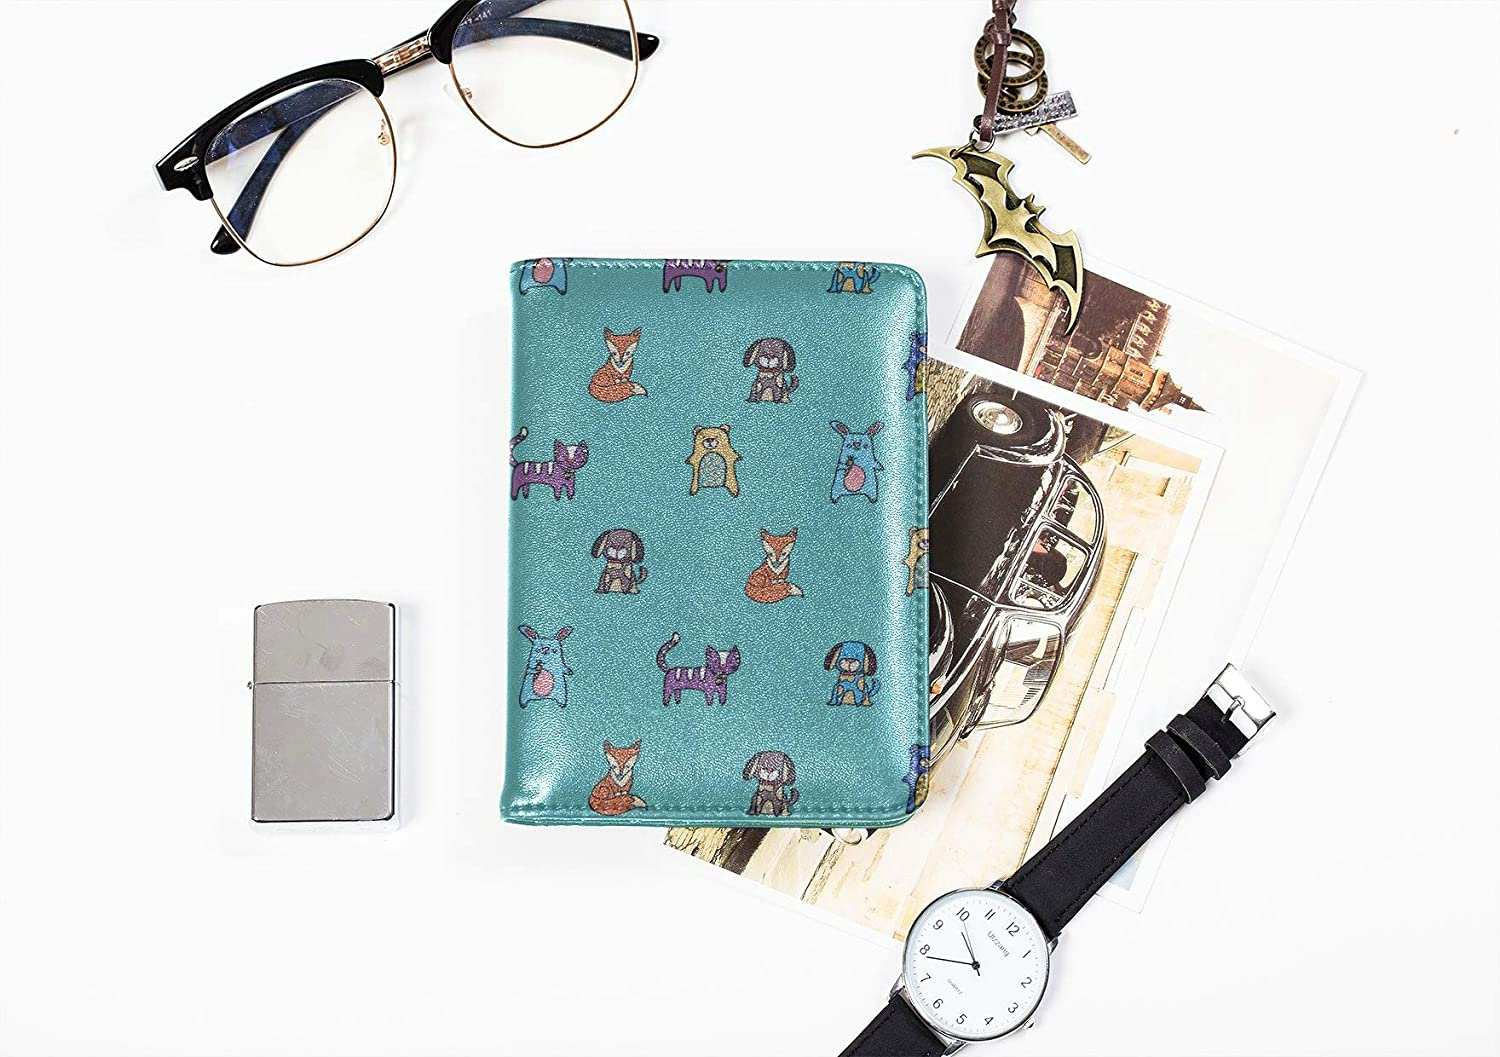 Colorful Passport Cover Cute Fashion Funny Animal Pet Cat Kids Passport Holder Cover Multi Purpose Print Leather Passport Cover Travel Wallets For Unisex 5.51x4.37 Inch